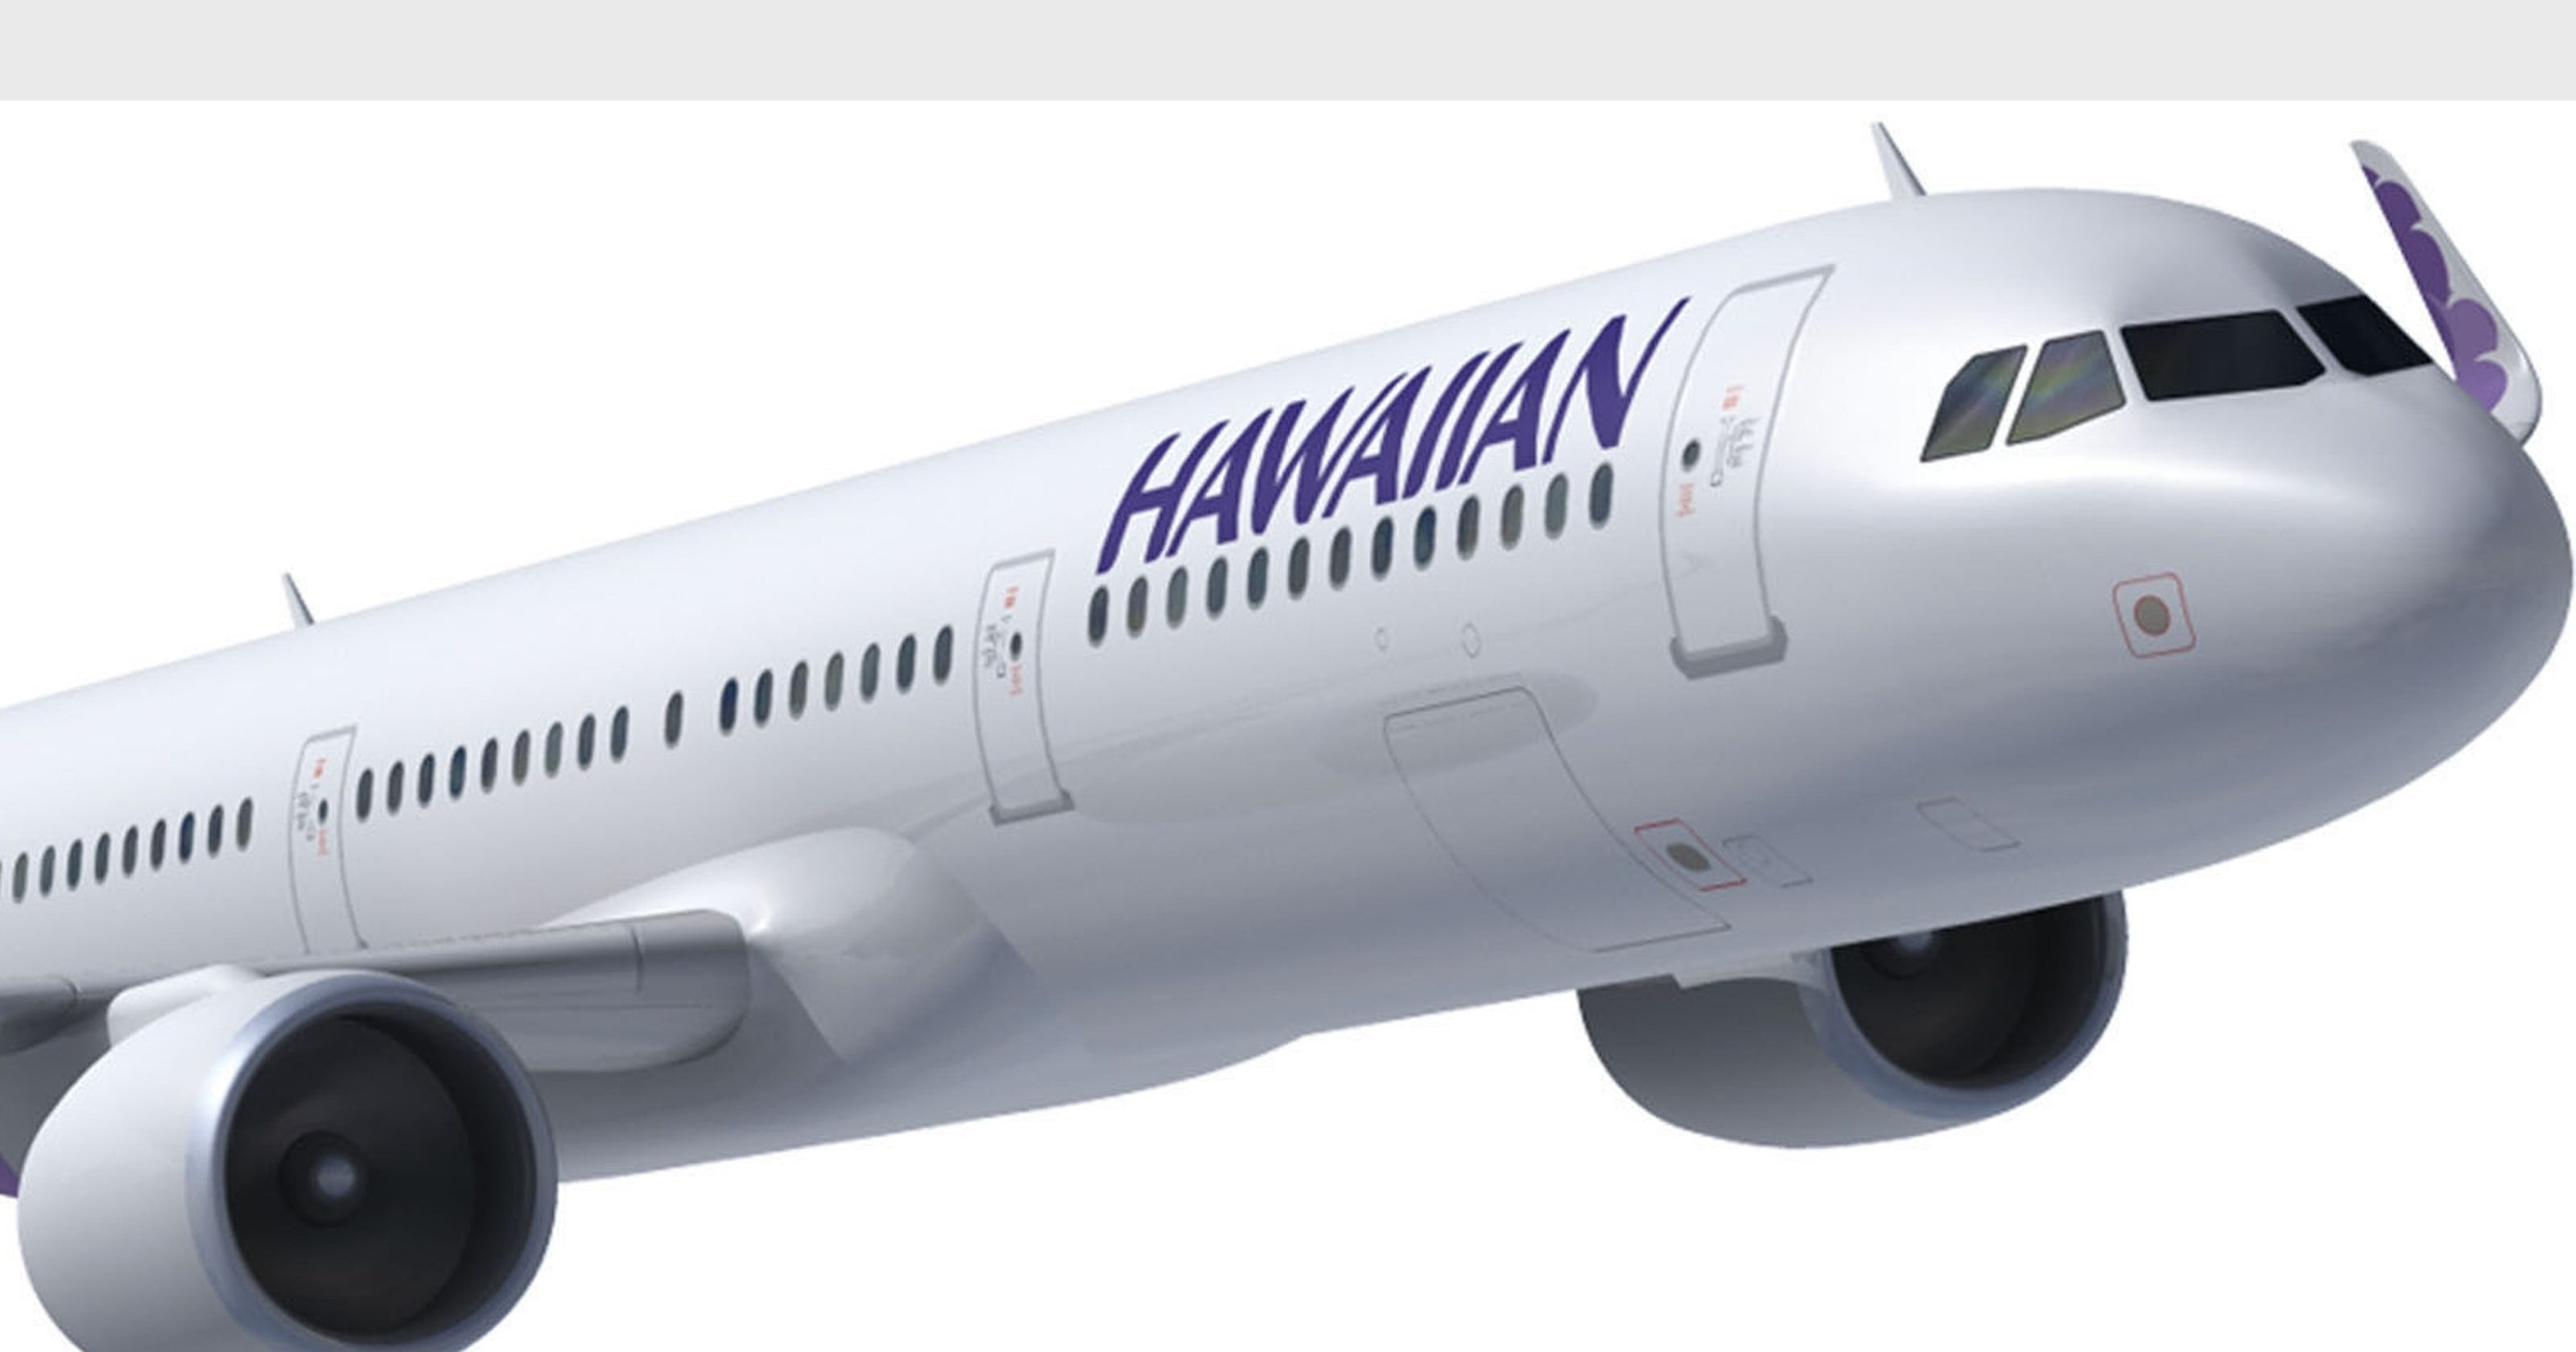 Hawaiian: Airbus A321neos will fly on new year-round routes from West Coast